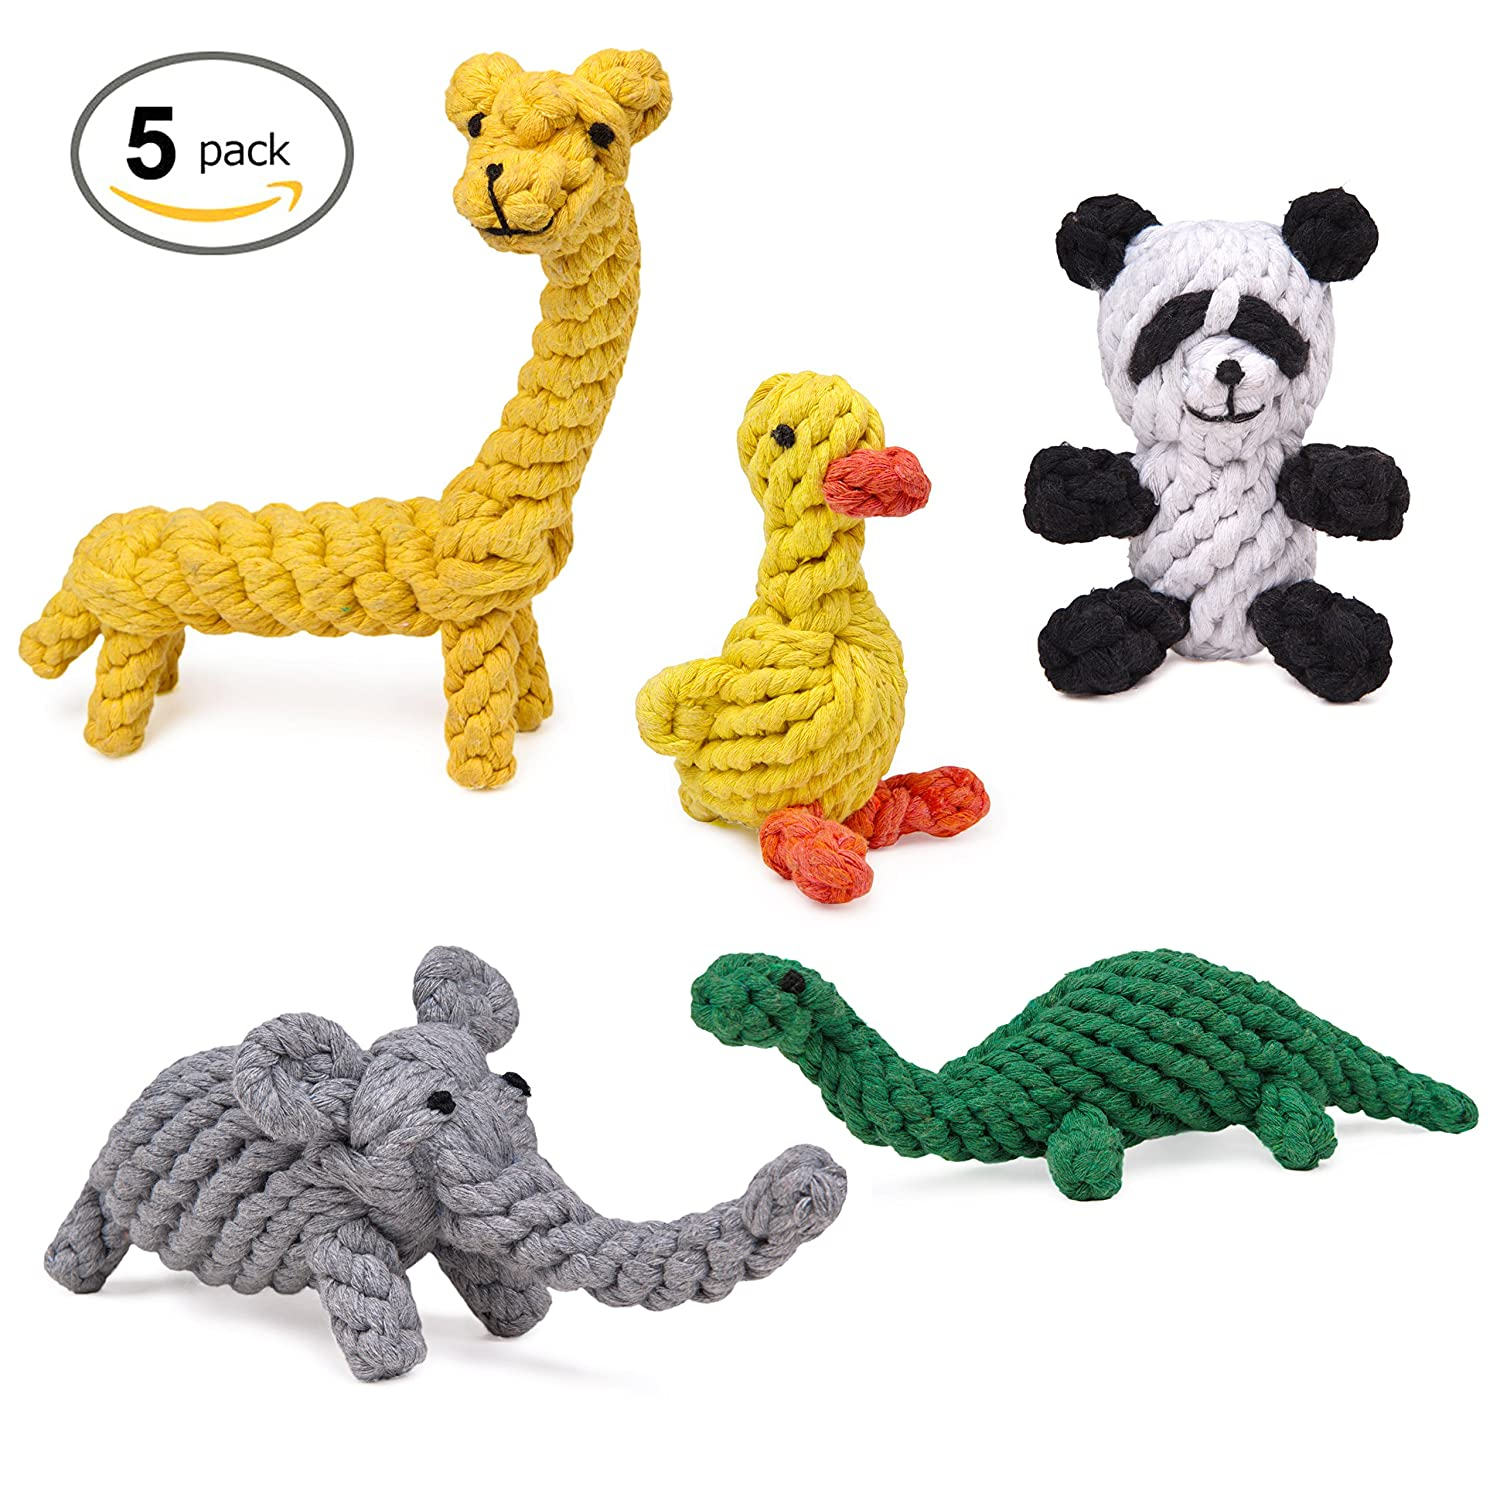 HC-RET Dog Toy, Animal Design Cotton Rope Dog Toys with Puppy Pet Play Chew and Training Toy (Set of 5)